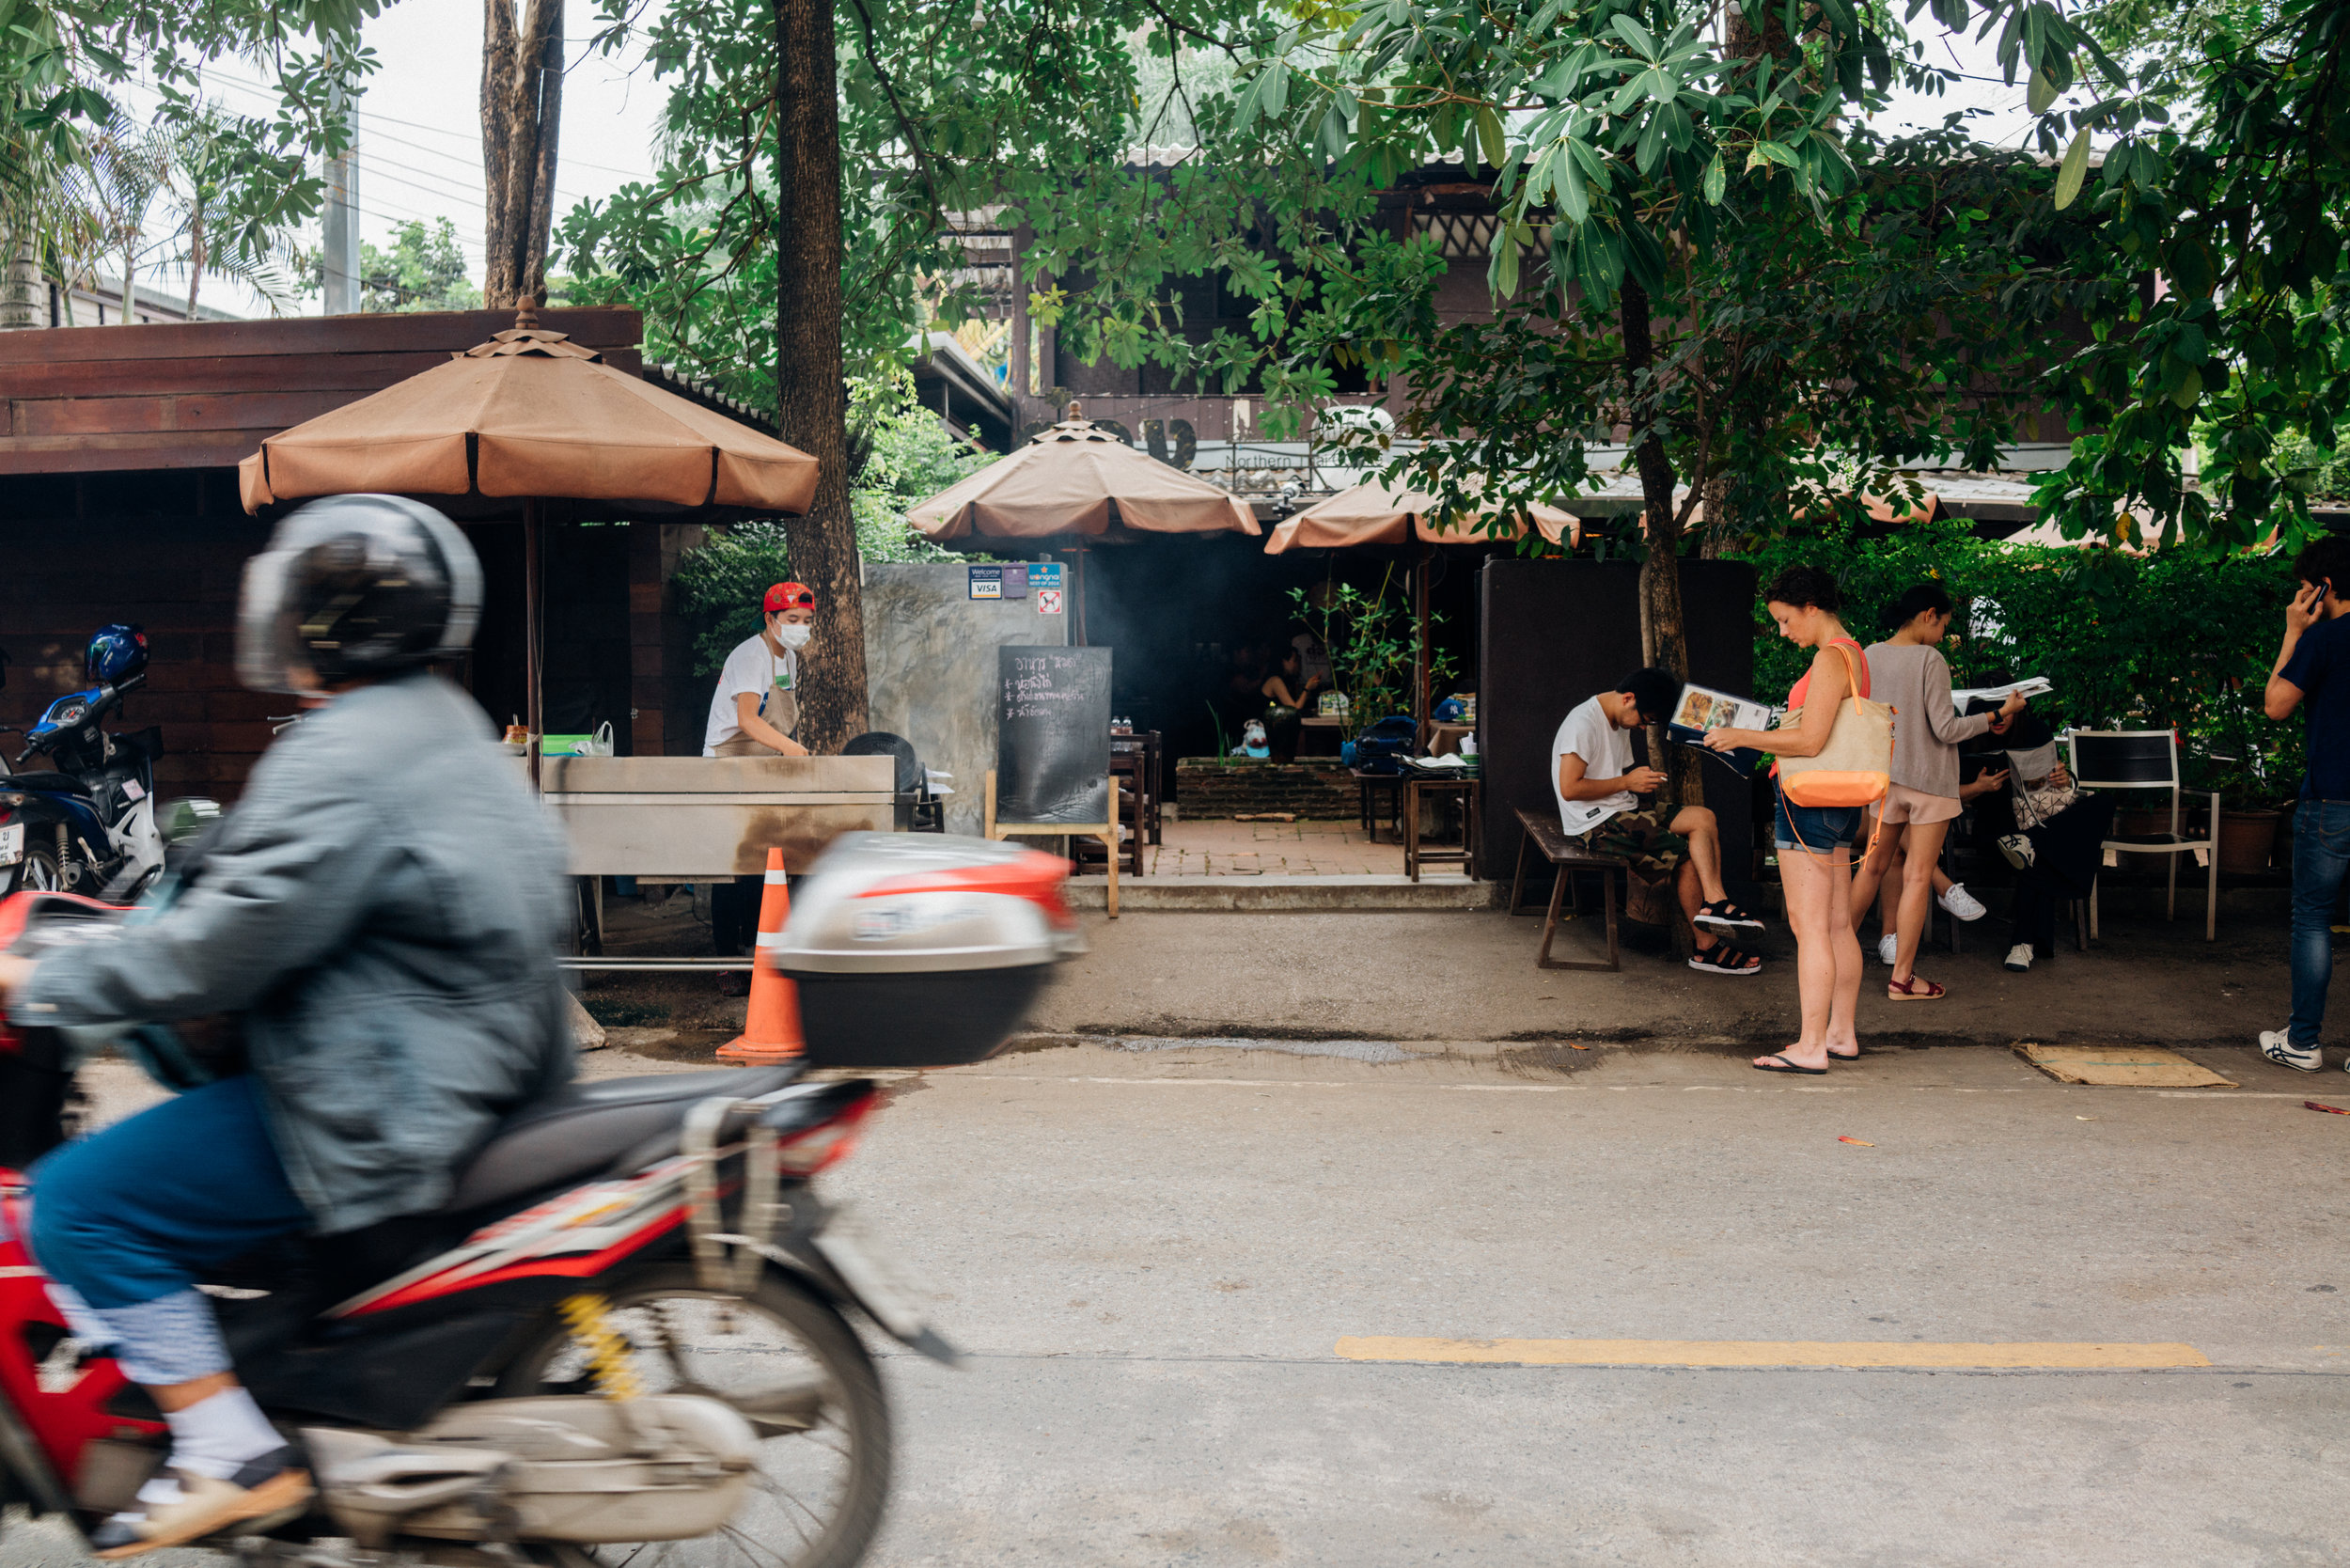 The grill and the wait at Tong Tem Toh